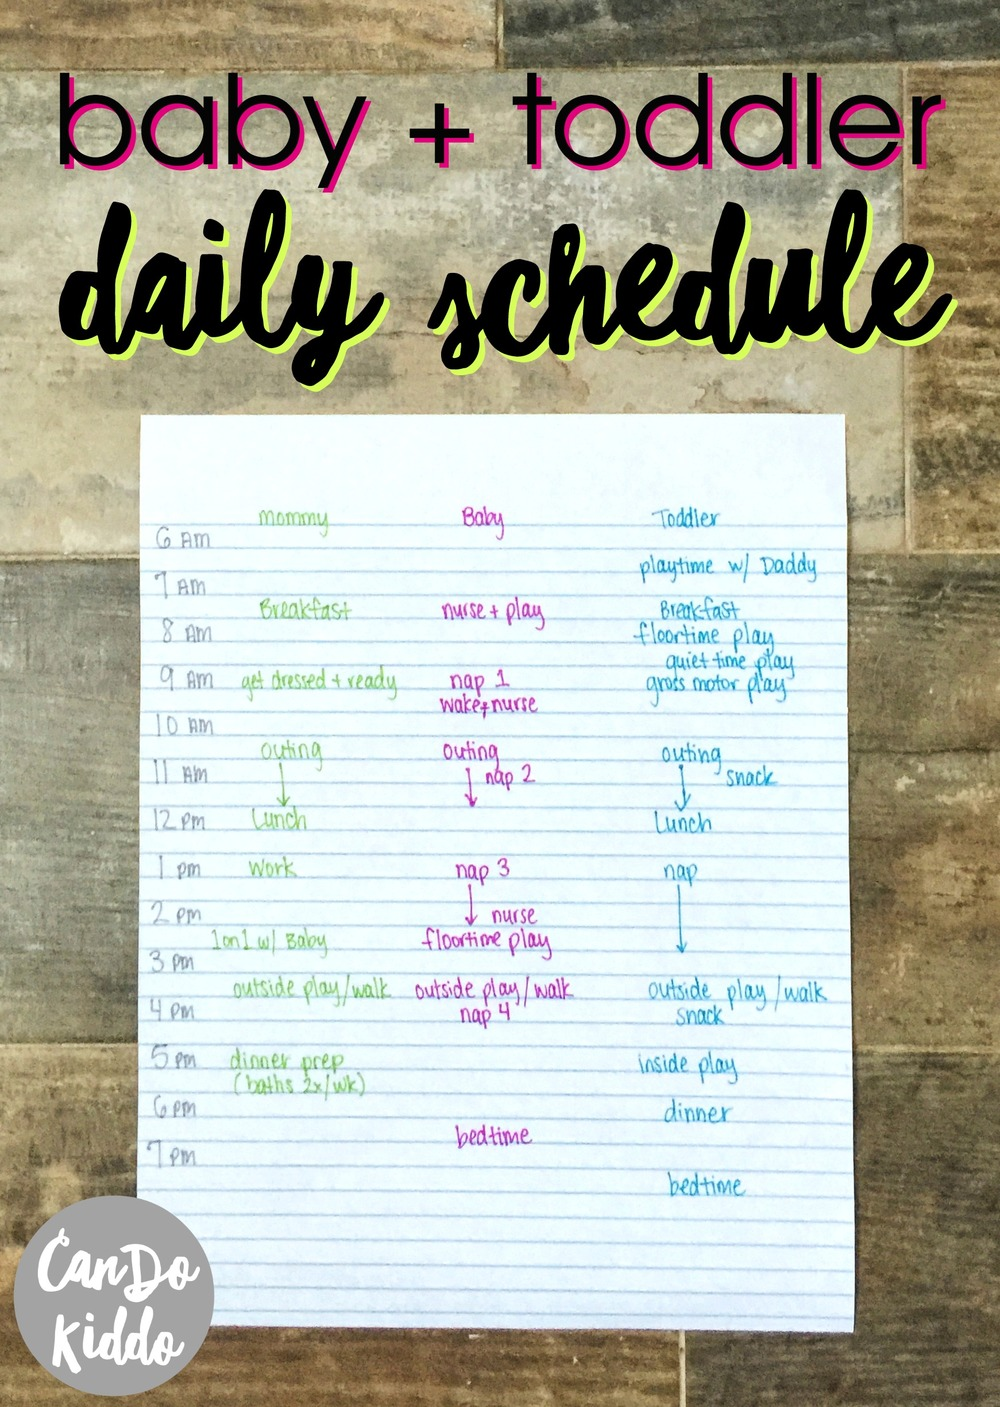 My Stay At Home Infant And Toddler Schedule Cando Kiddo